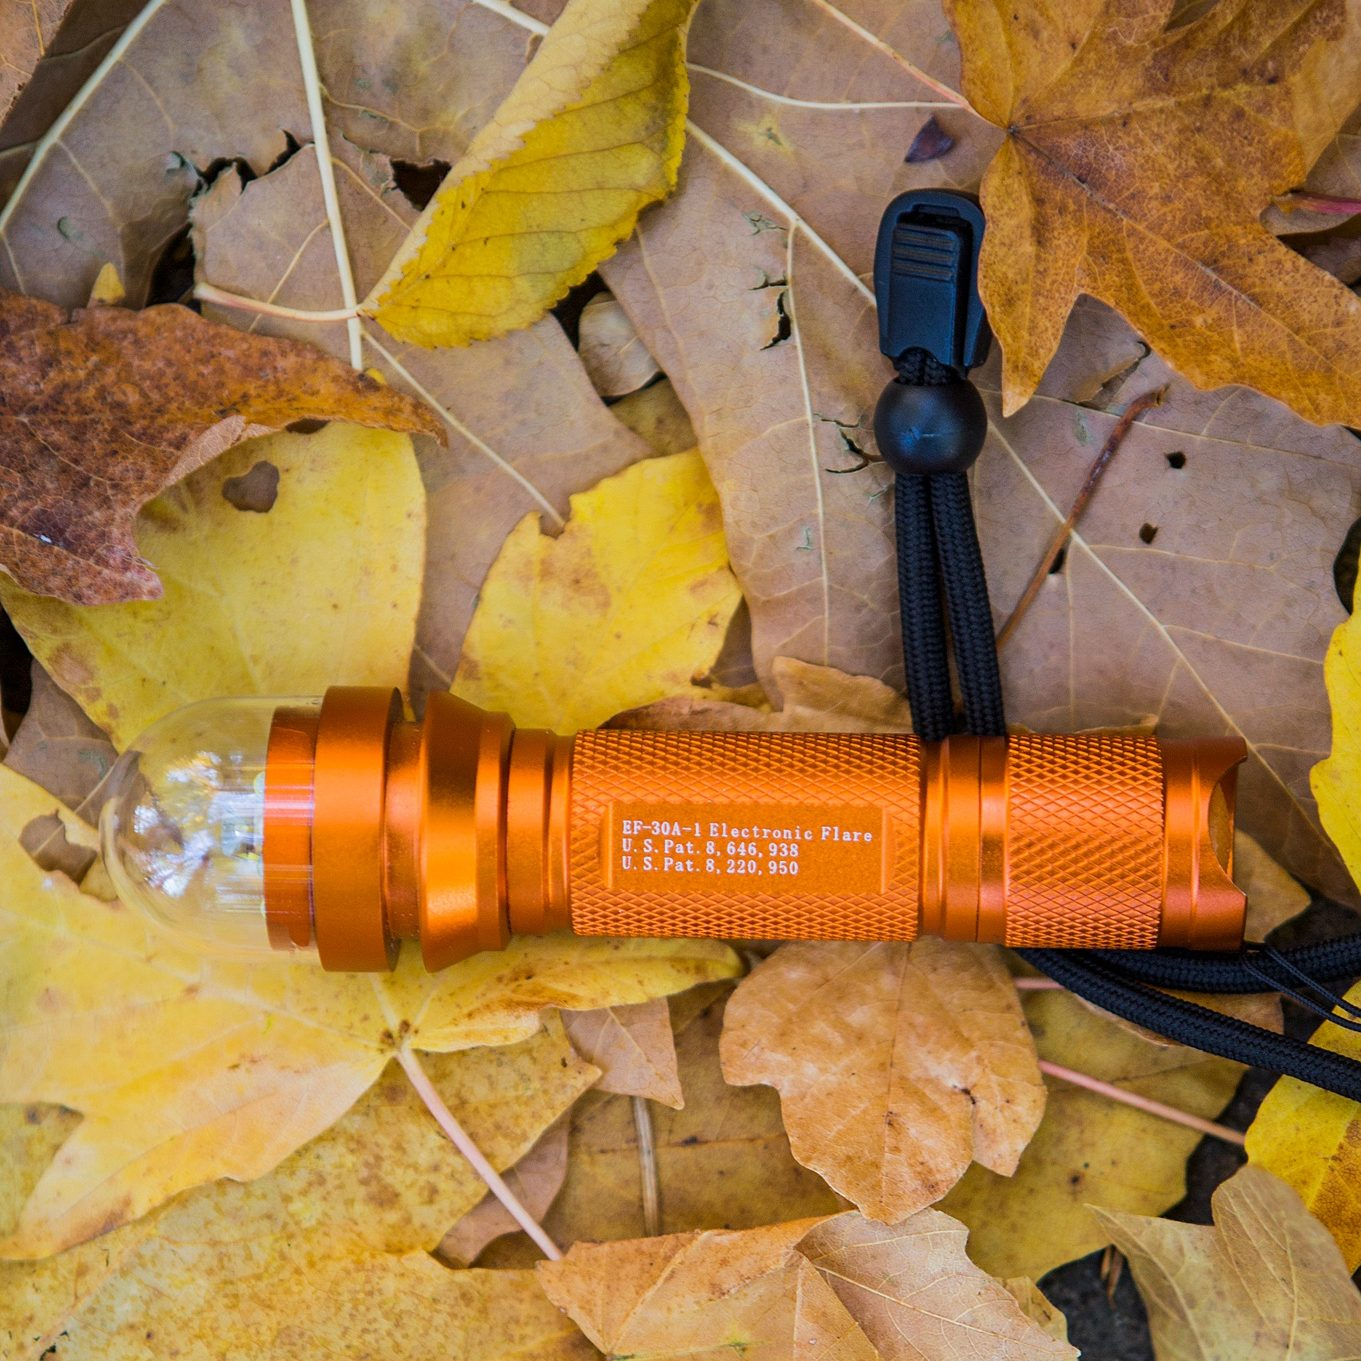 handheld infrared electronic signal flare